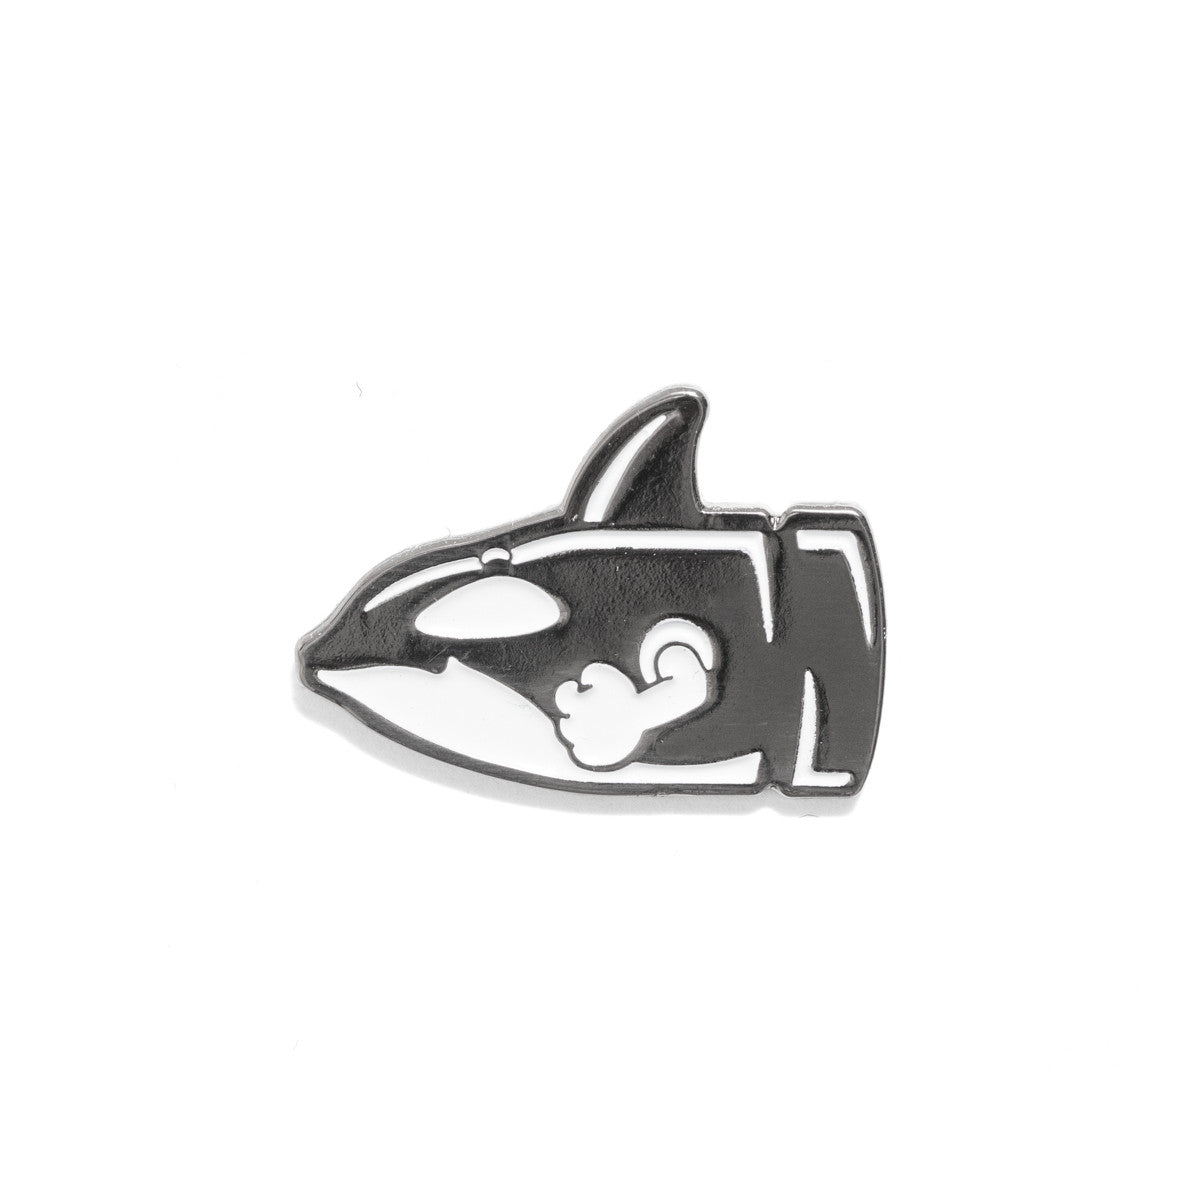 Bullet Bill x Orca Pin - Warrior Pins